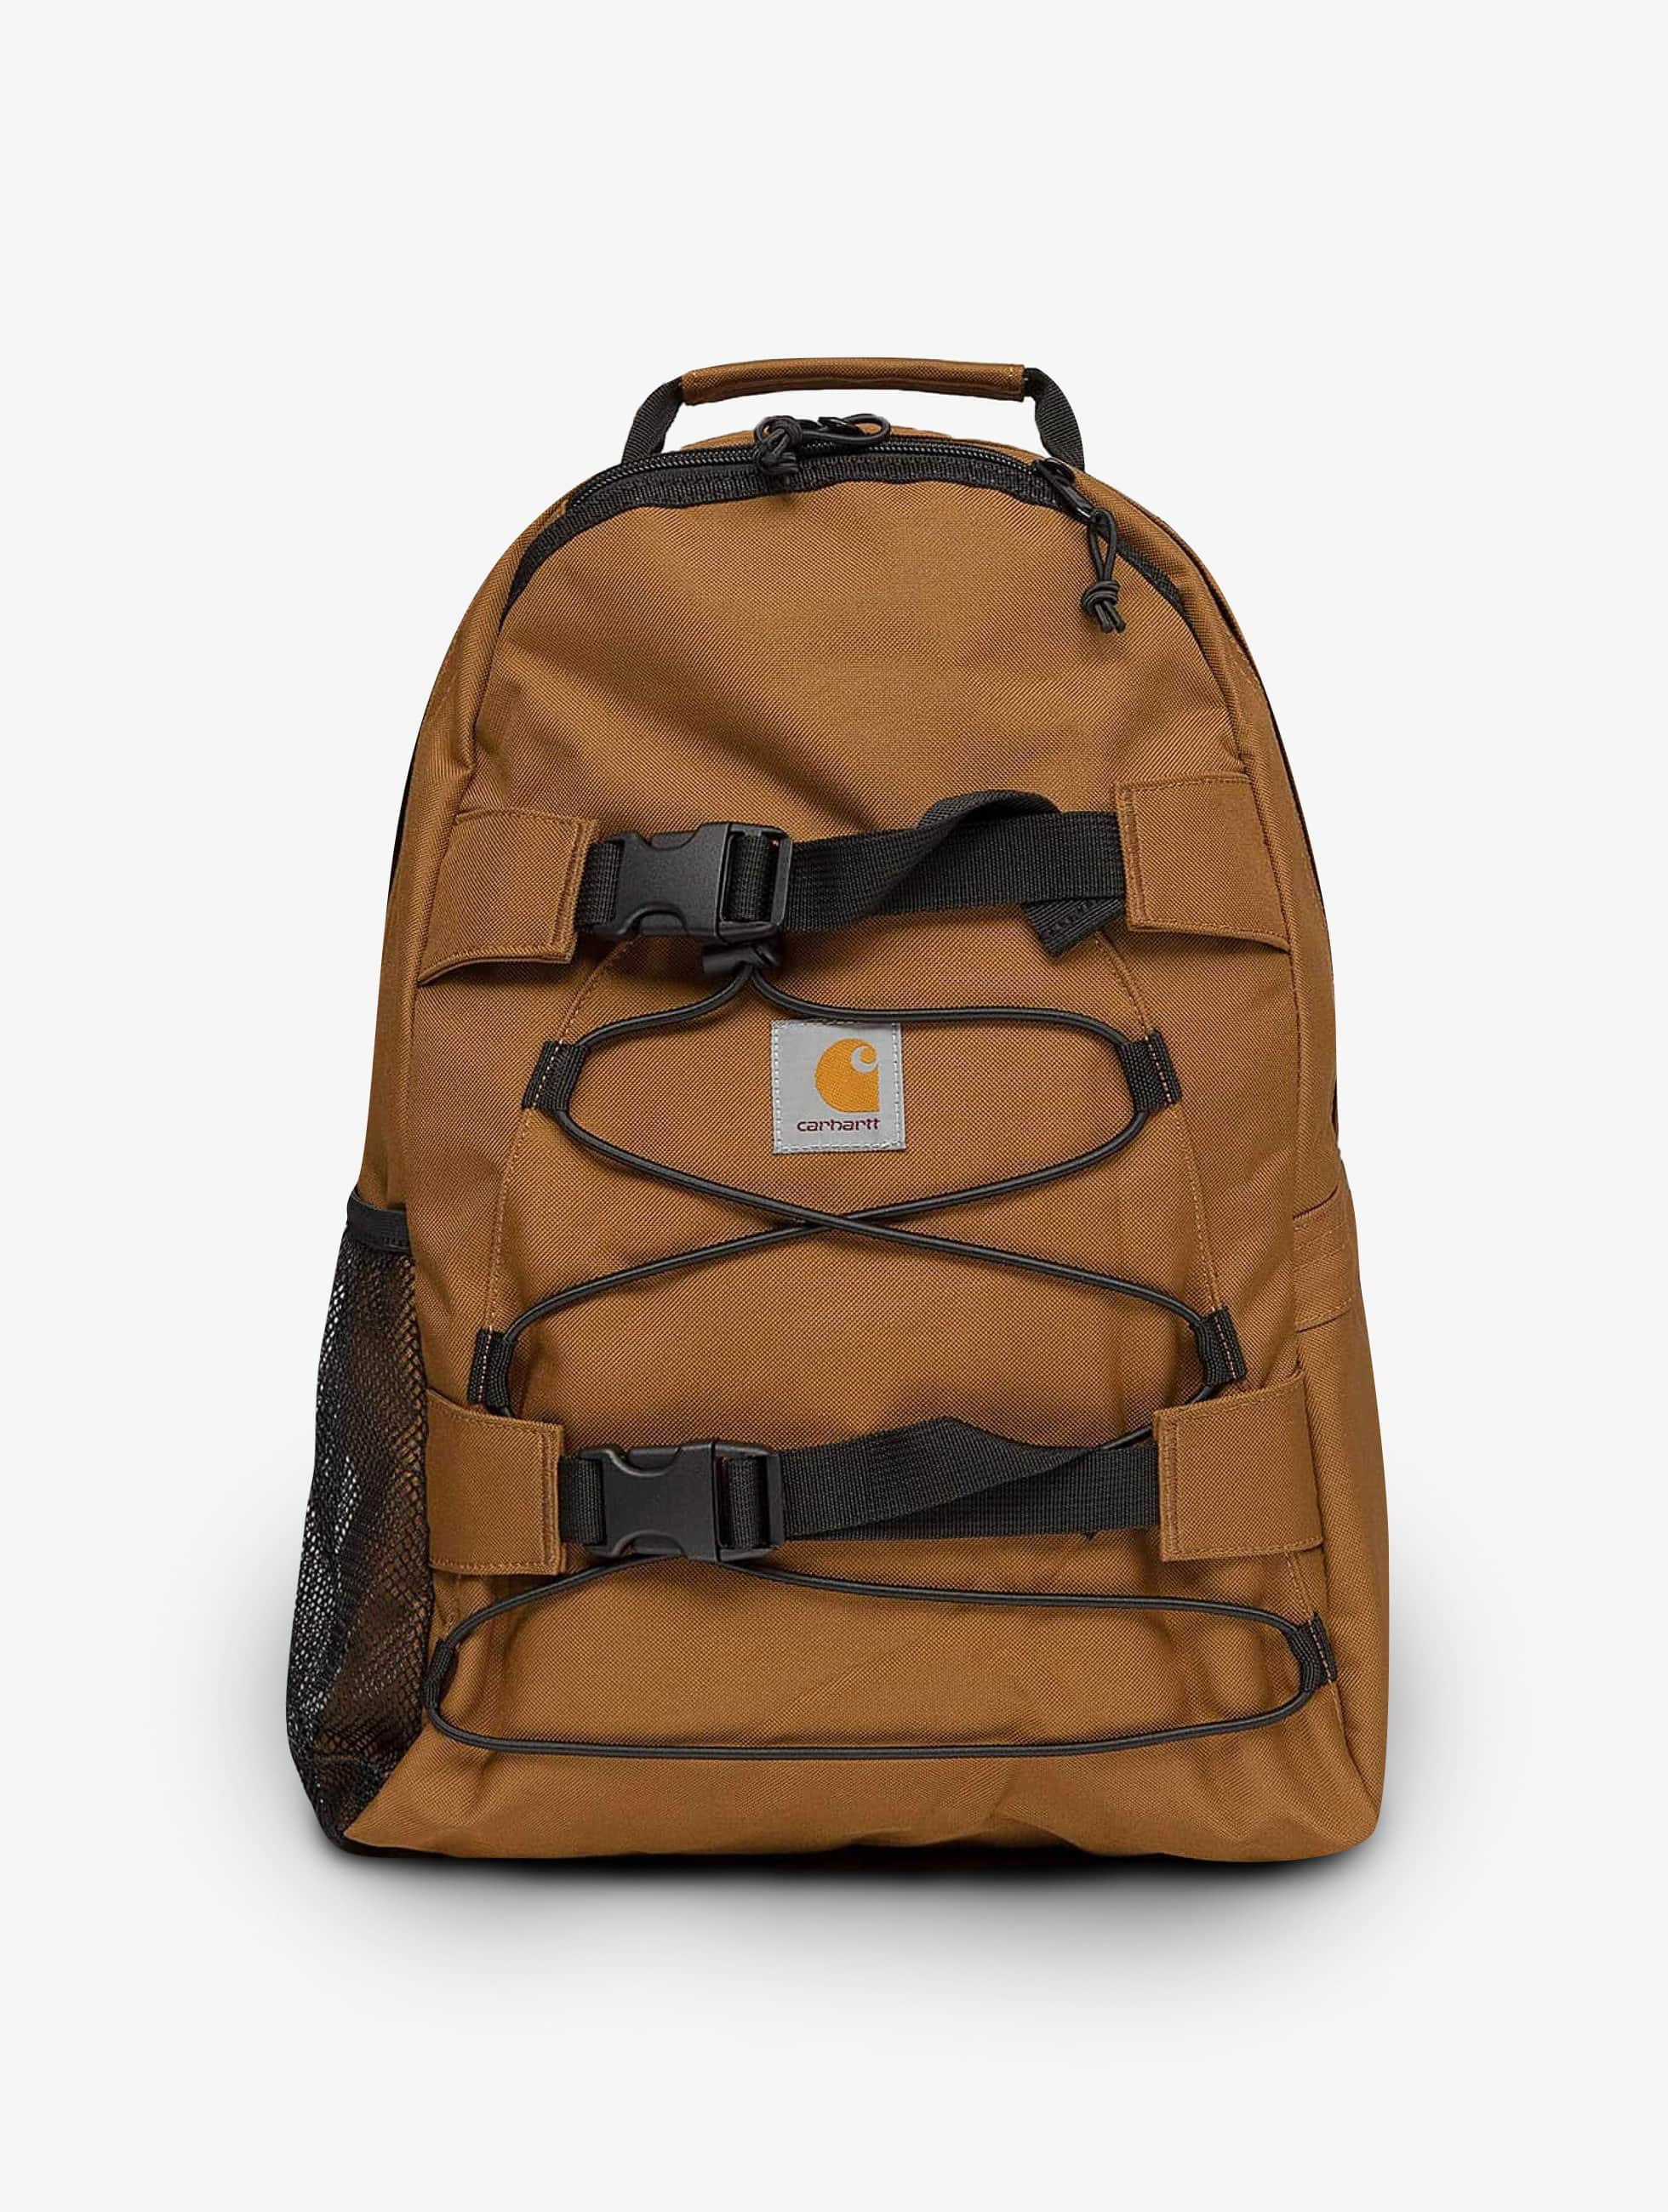 Carhartt WIP Backpack Kickflip brown